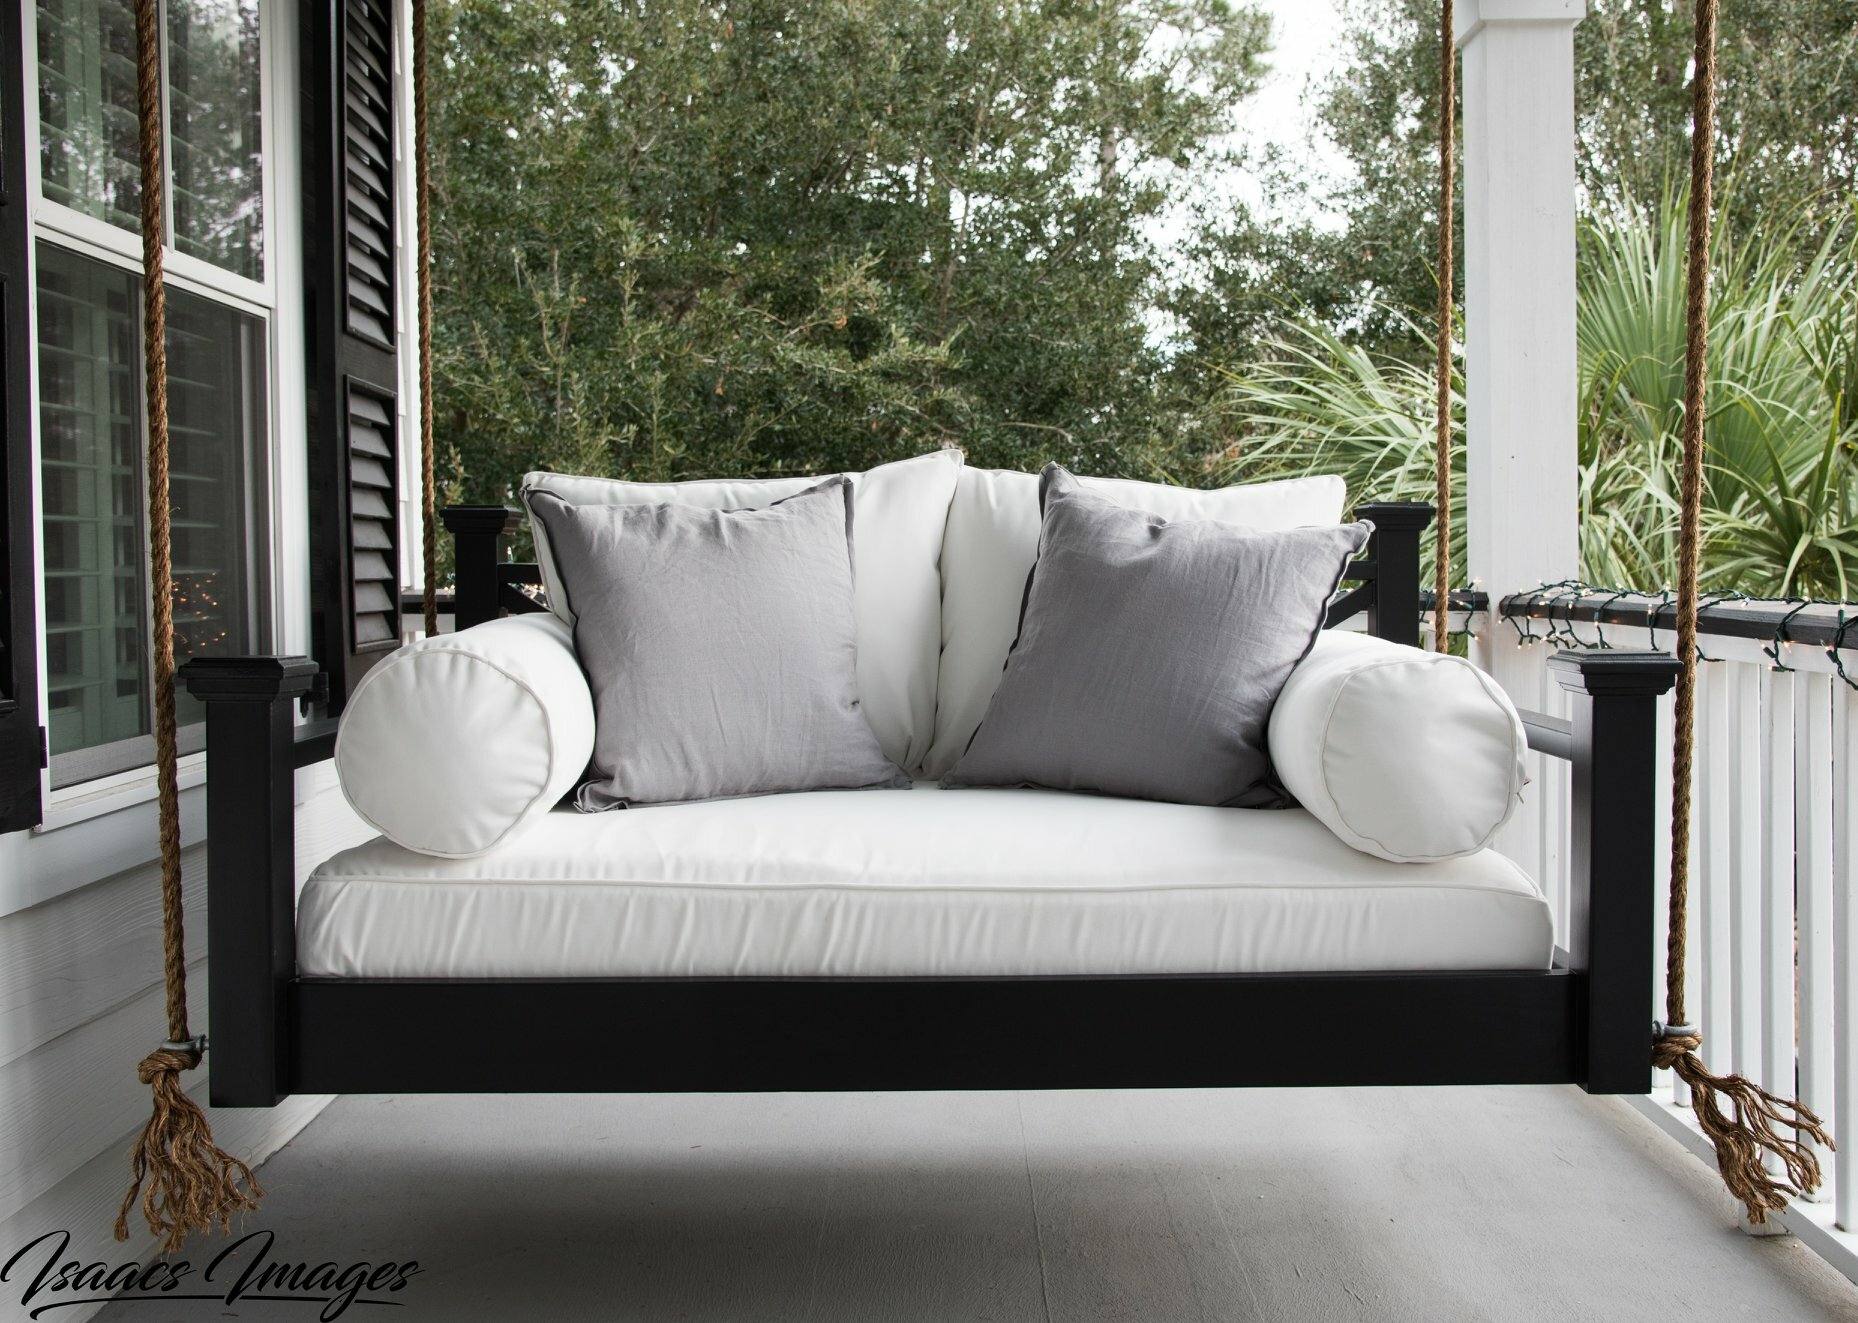 Melvin Porch Swing Bed